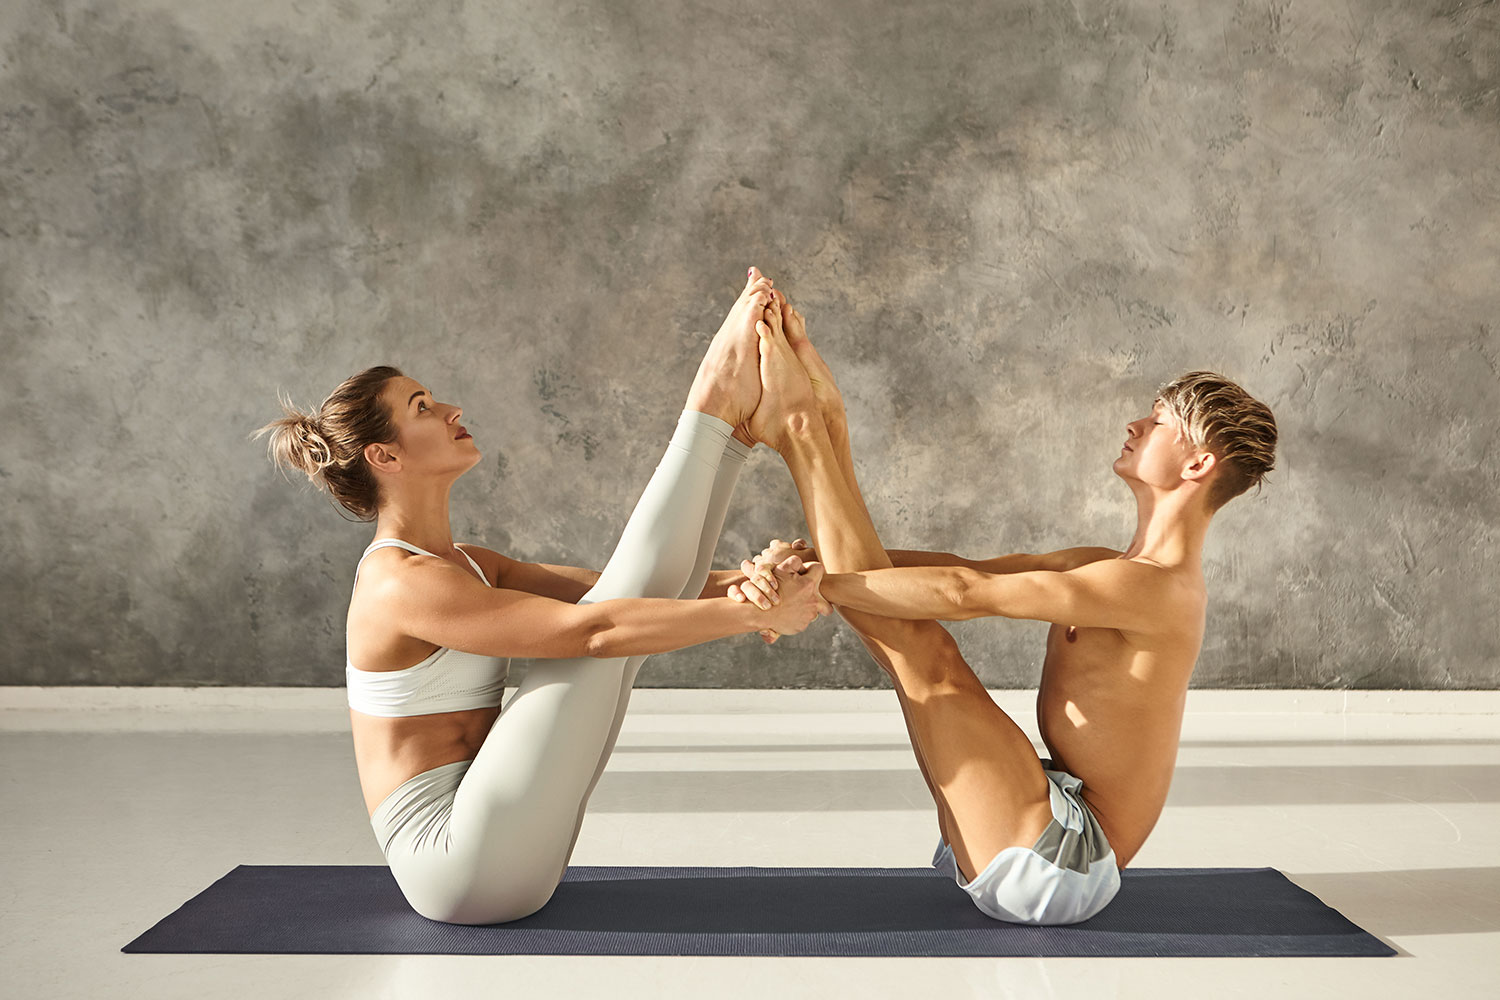 Couples Yoga for Beginners: Build Intimacy and Trust